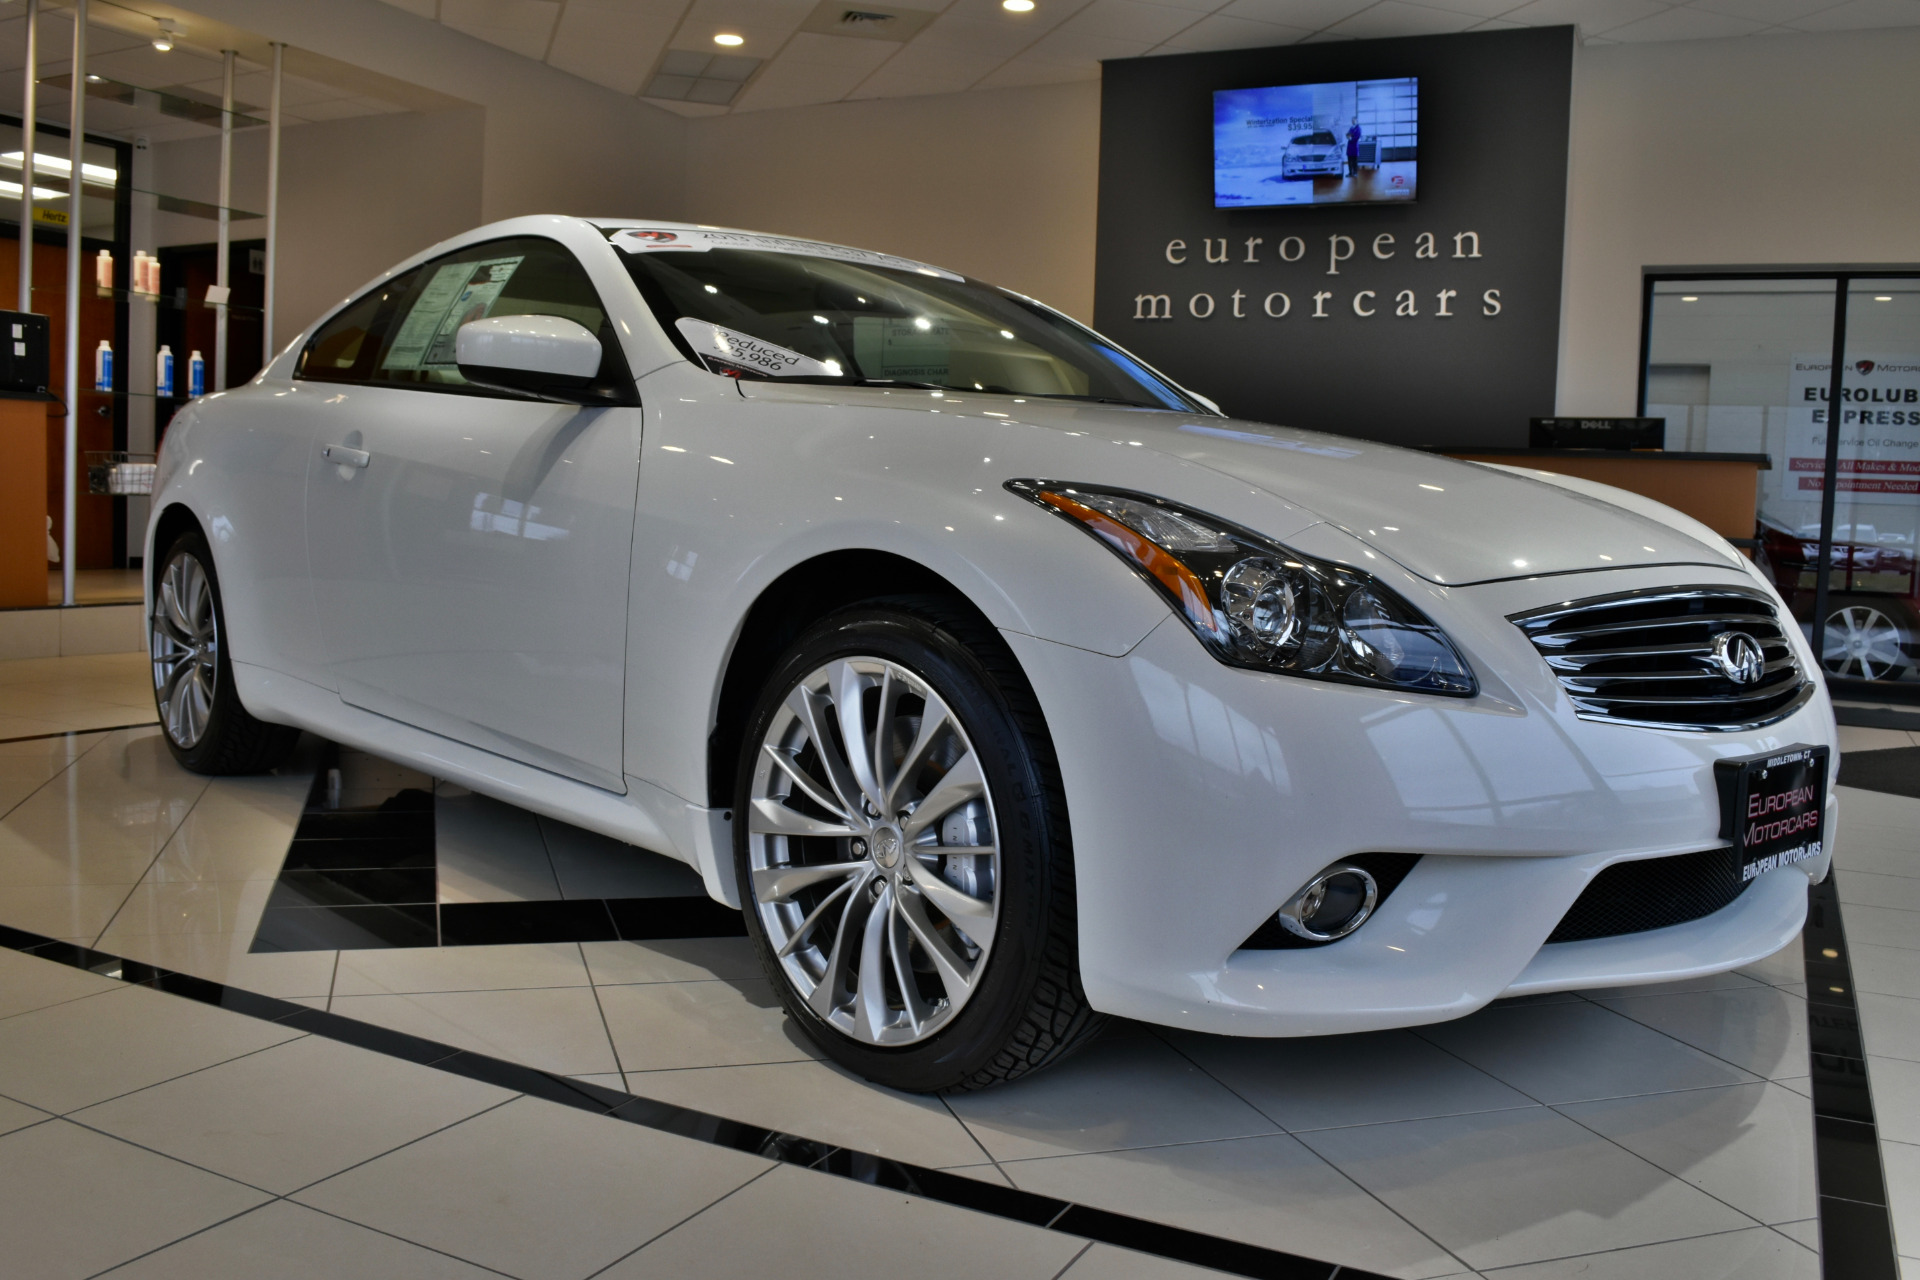 2013 infiniti g37 xs coupe x for sale near middletown ct for Euro motors collision center